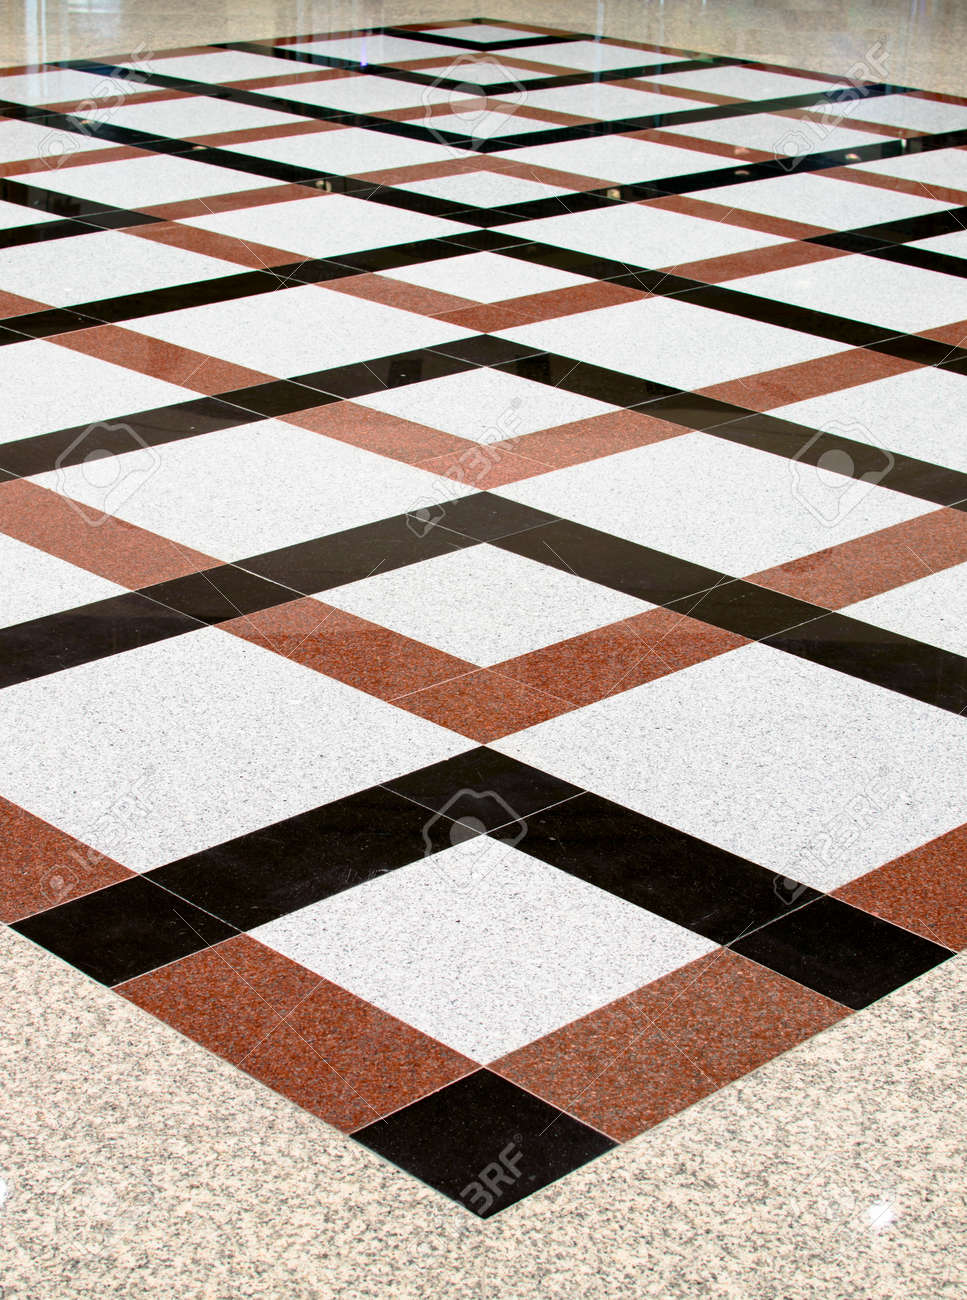 Different floor tiles indoors stock photo picture and royalty different floor tiles indoors stock photo 32530633 dailygadgetfo Image collections